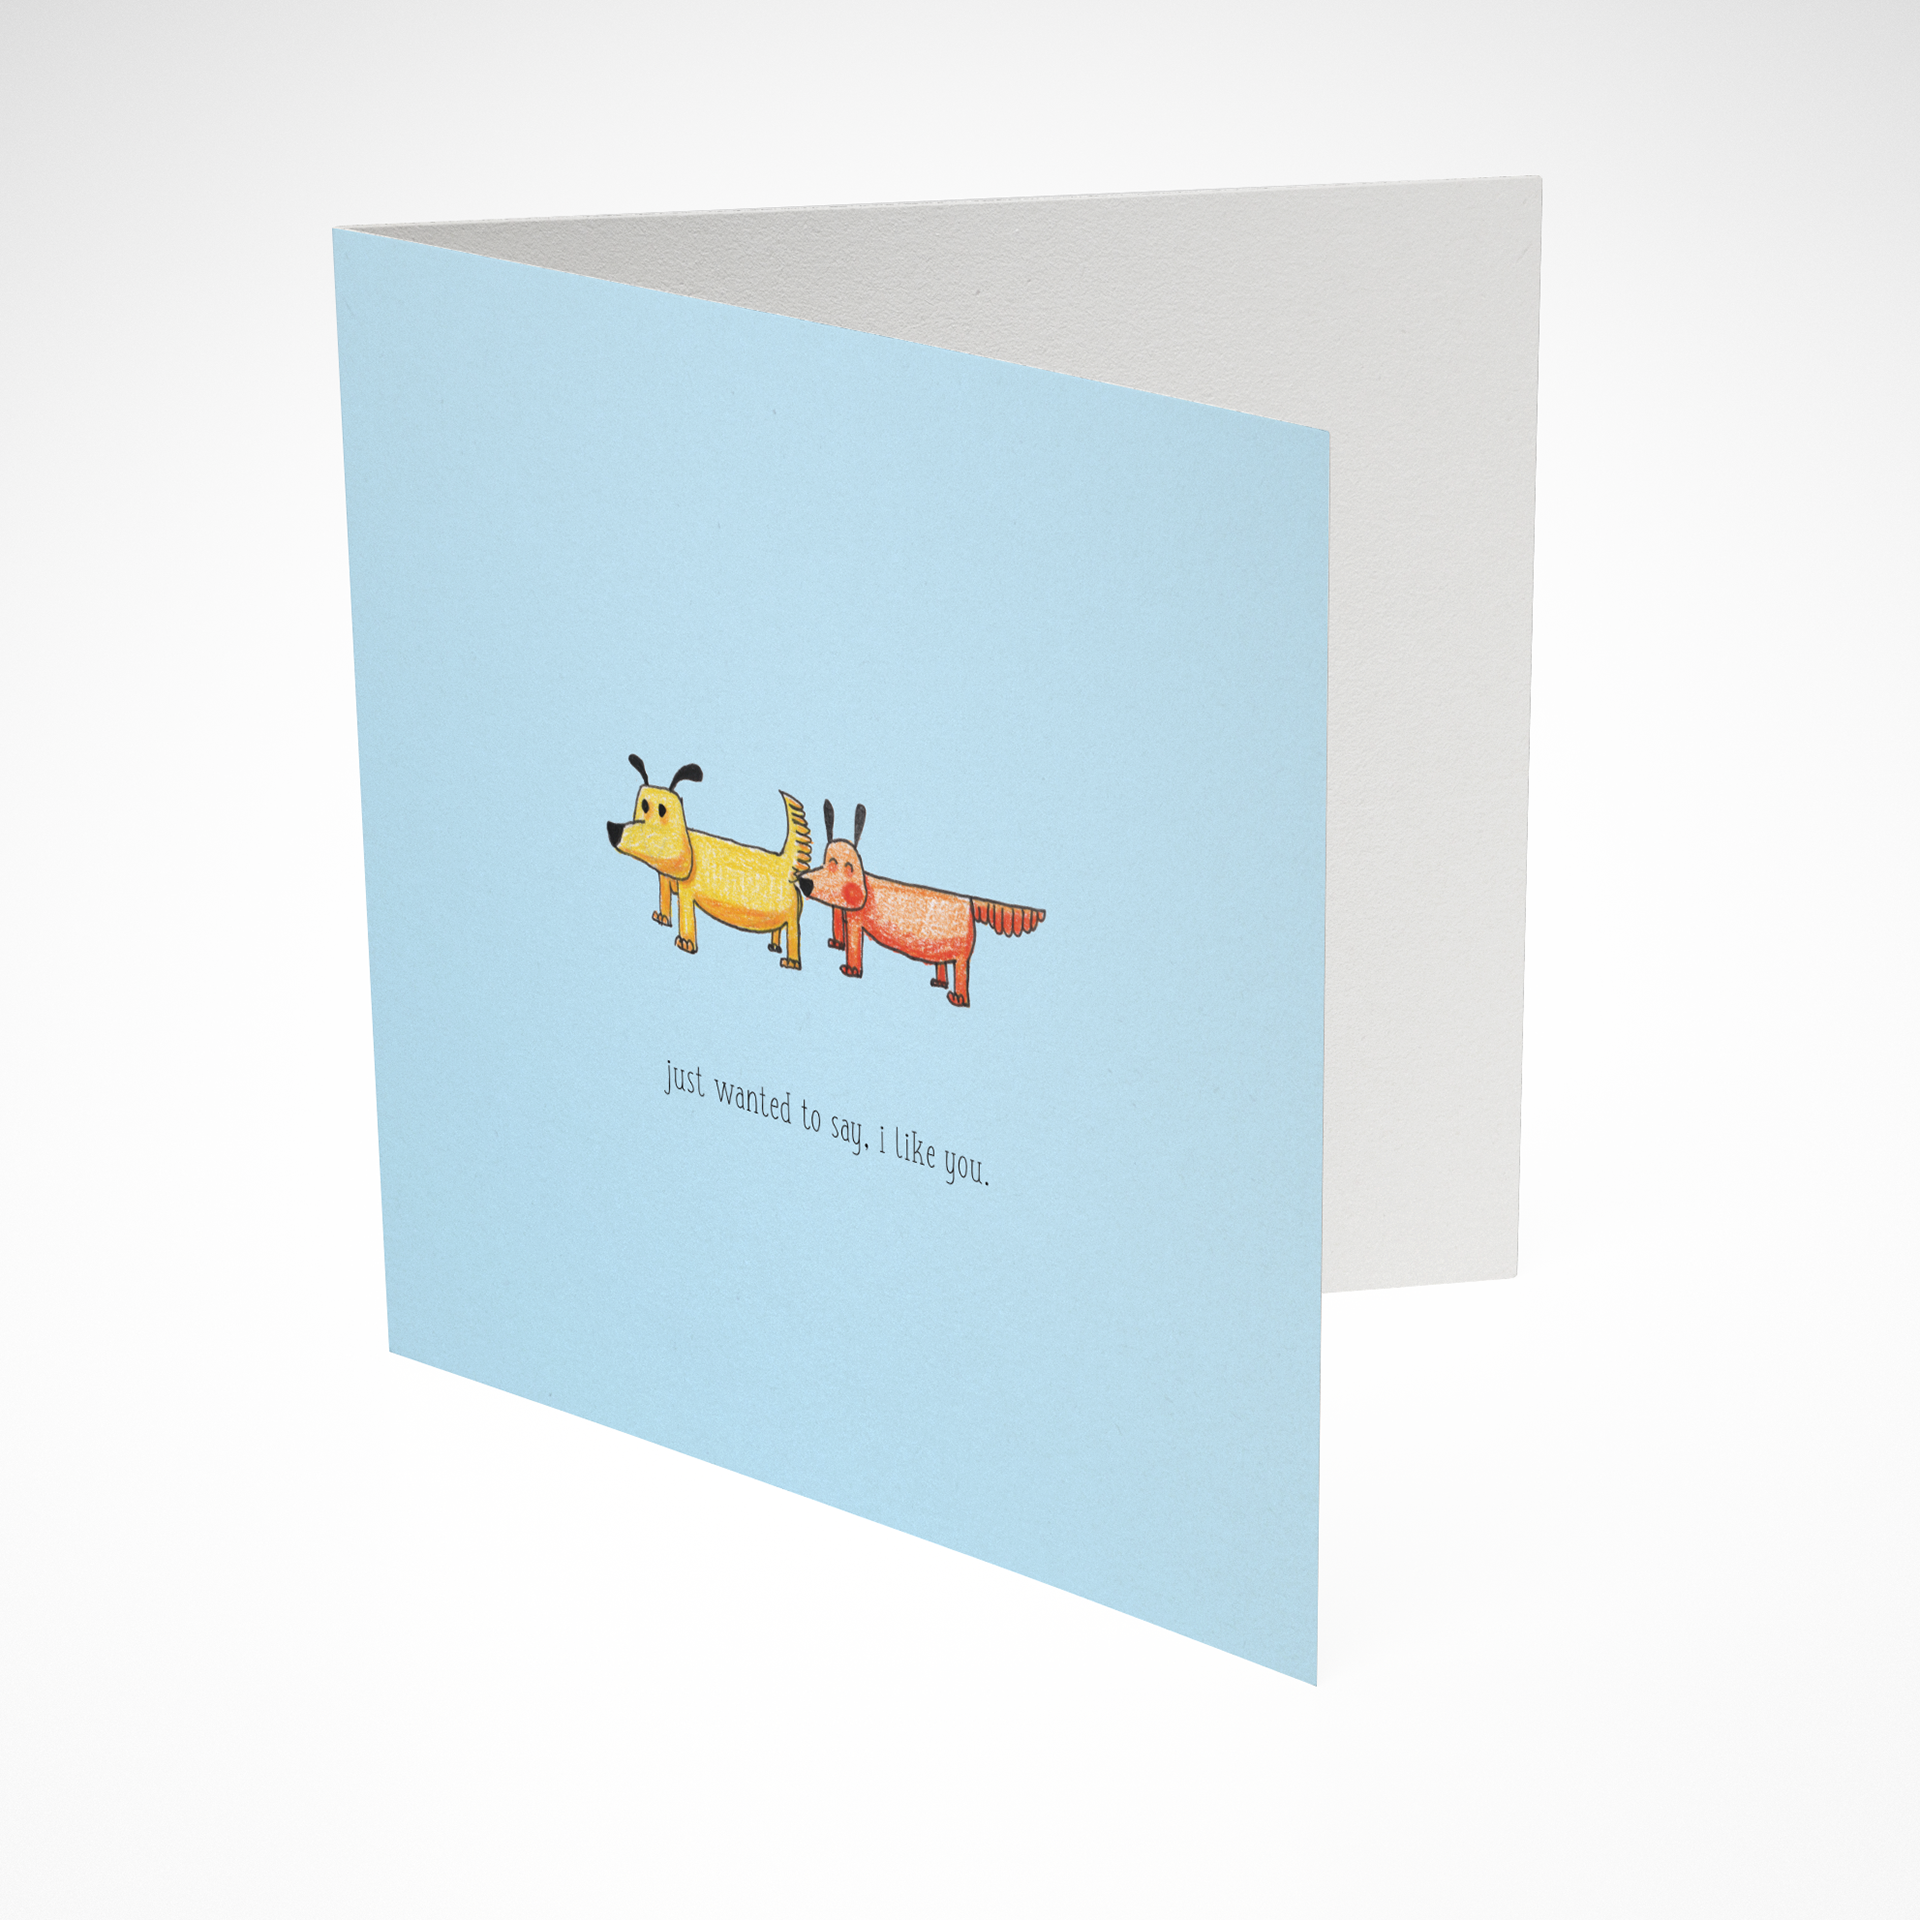 Fintan wall design illustrated greeting cards illustrated greeting cards m4hsunfo